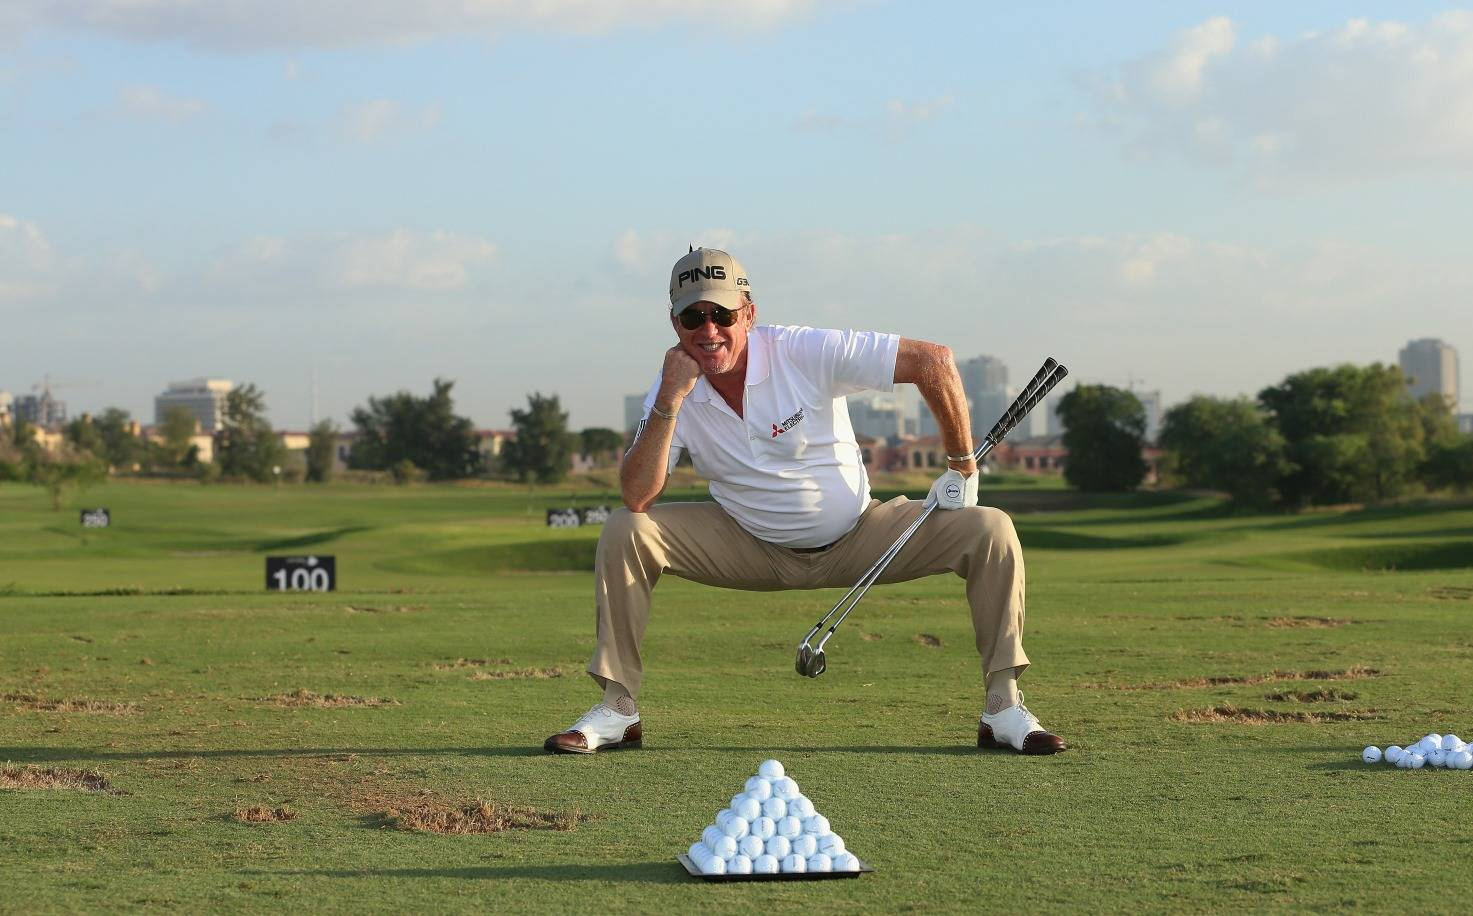 Miguel Angel Jimenez stretch